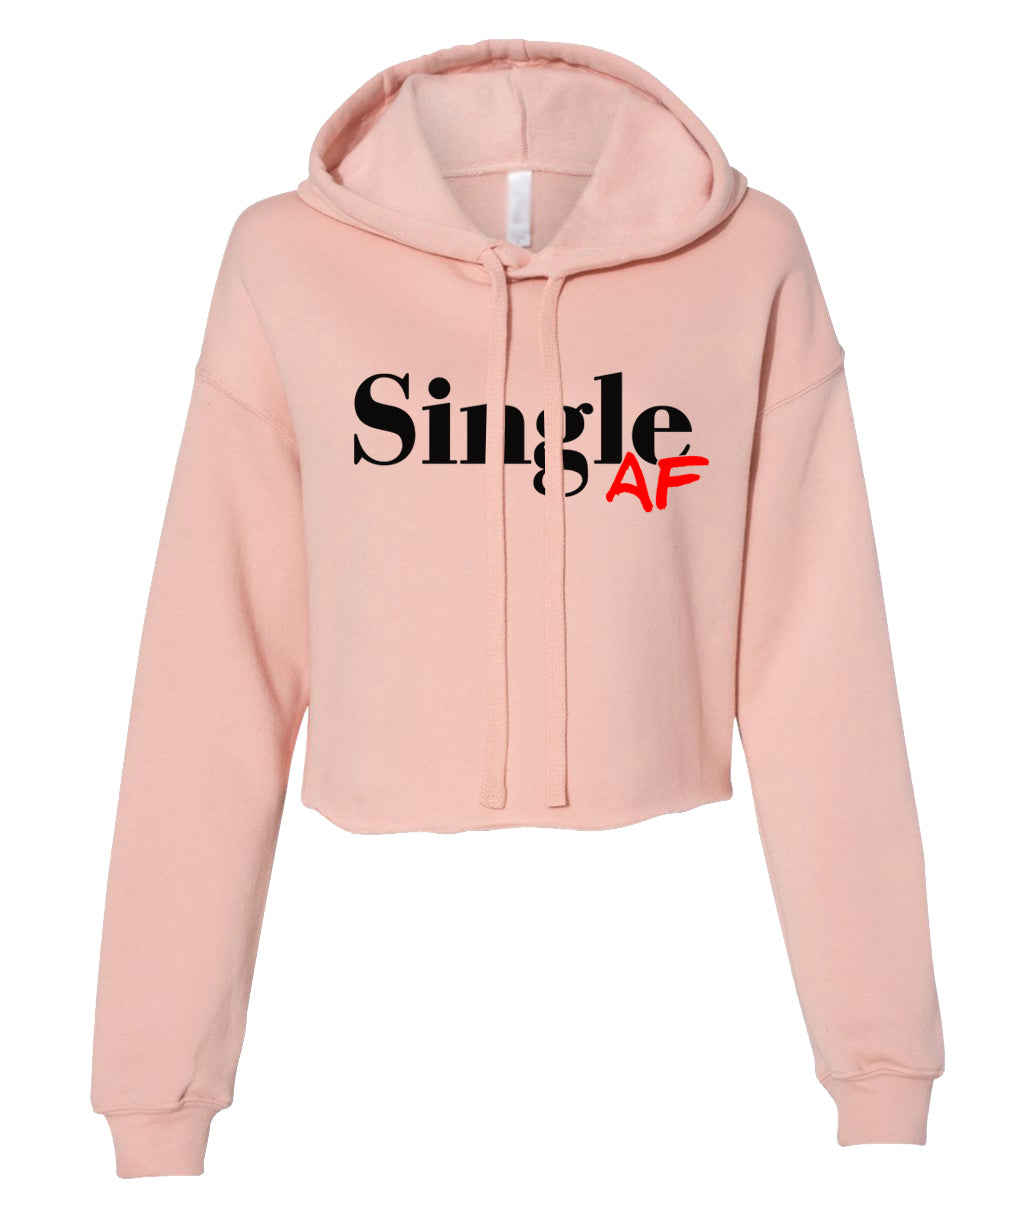 peach single AF cropped hoodie